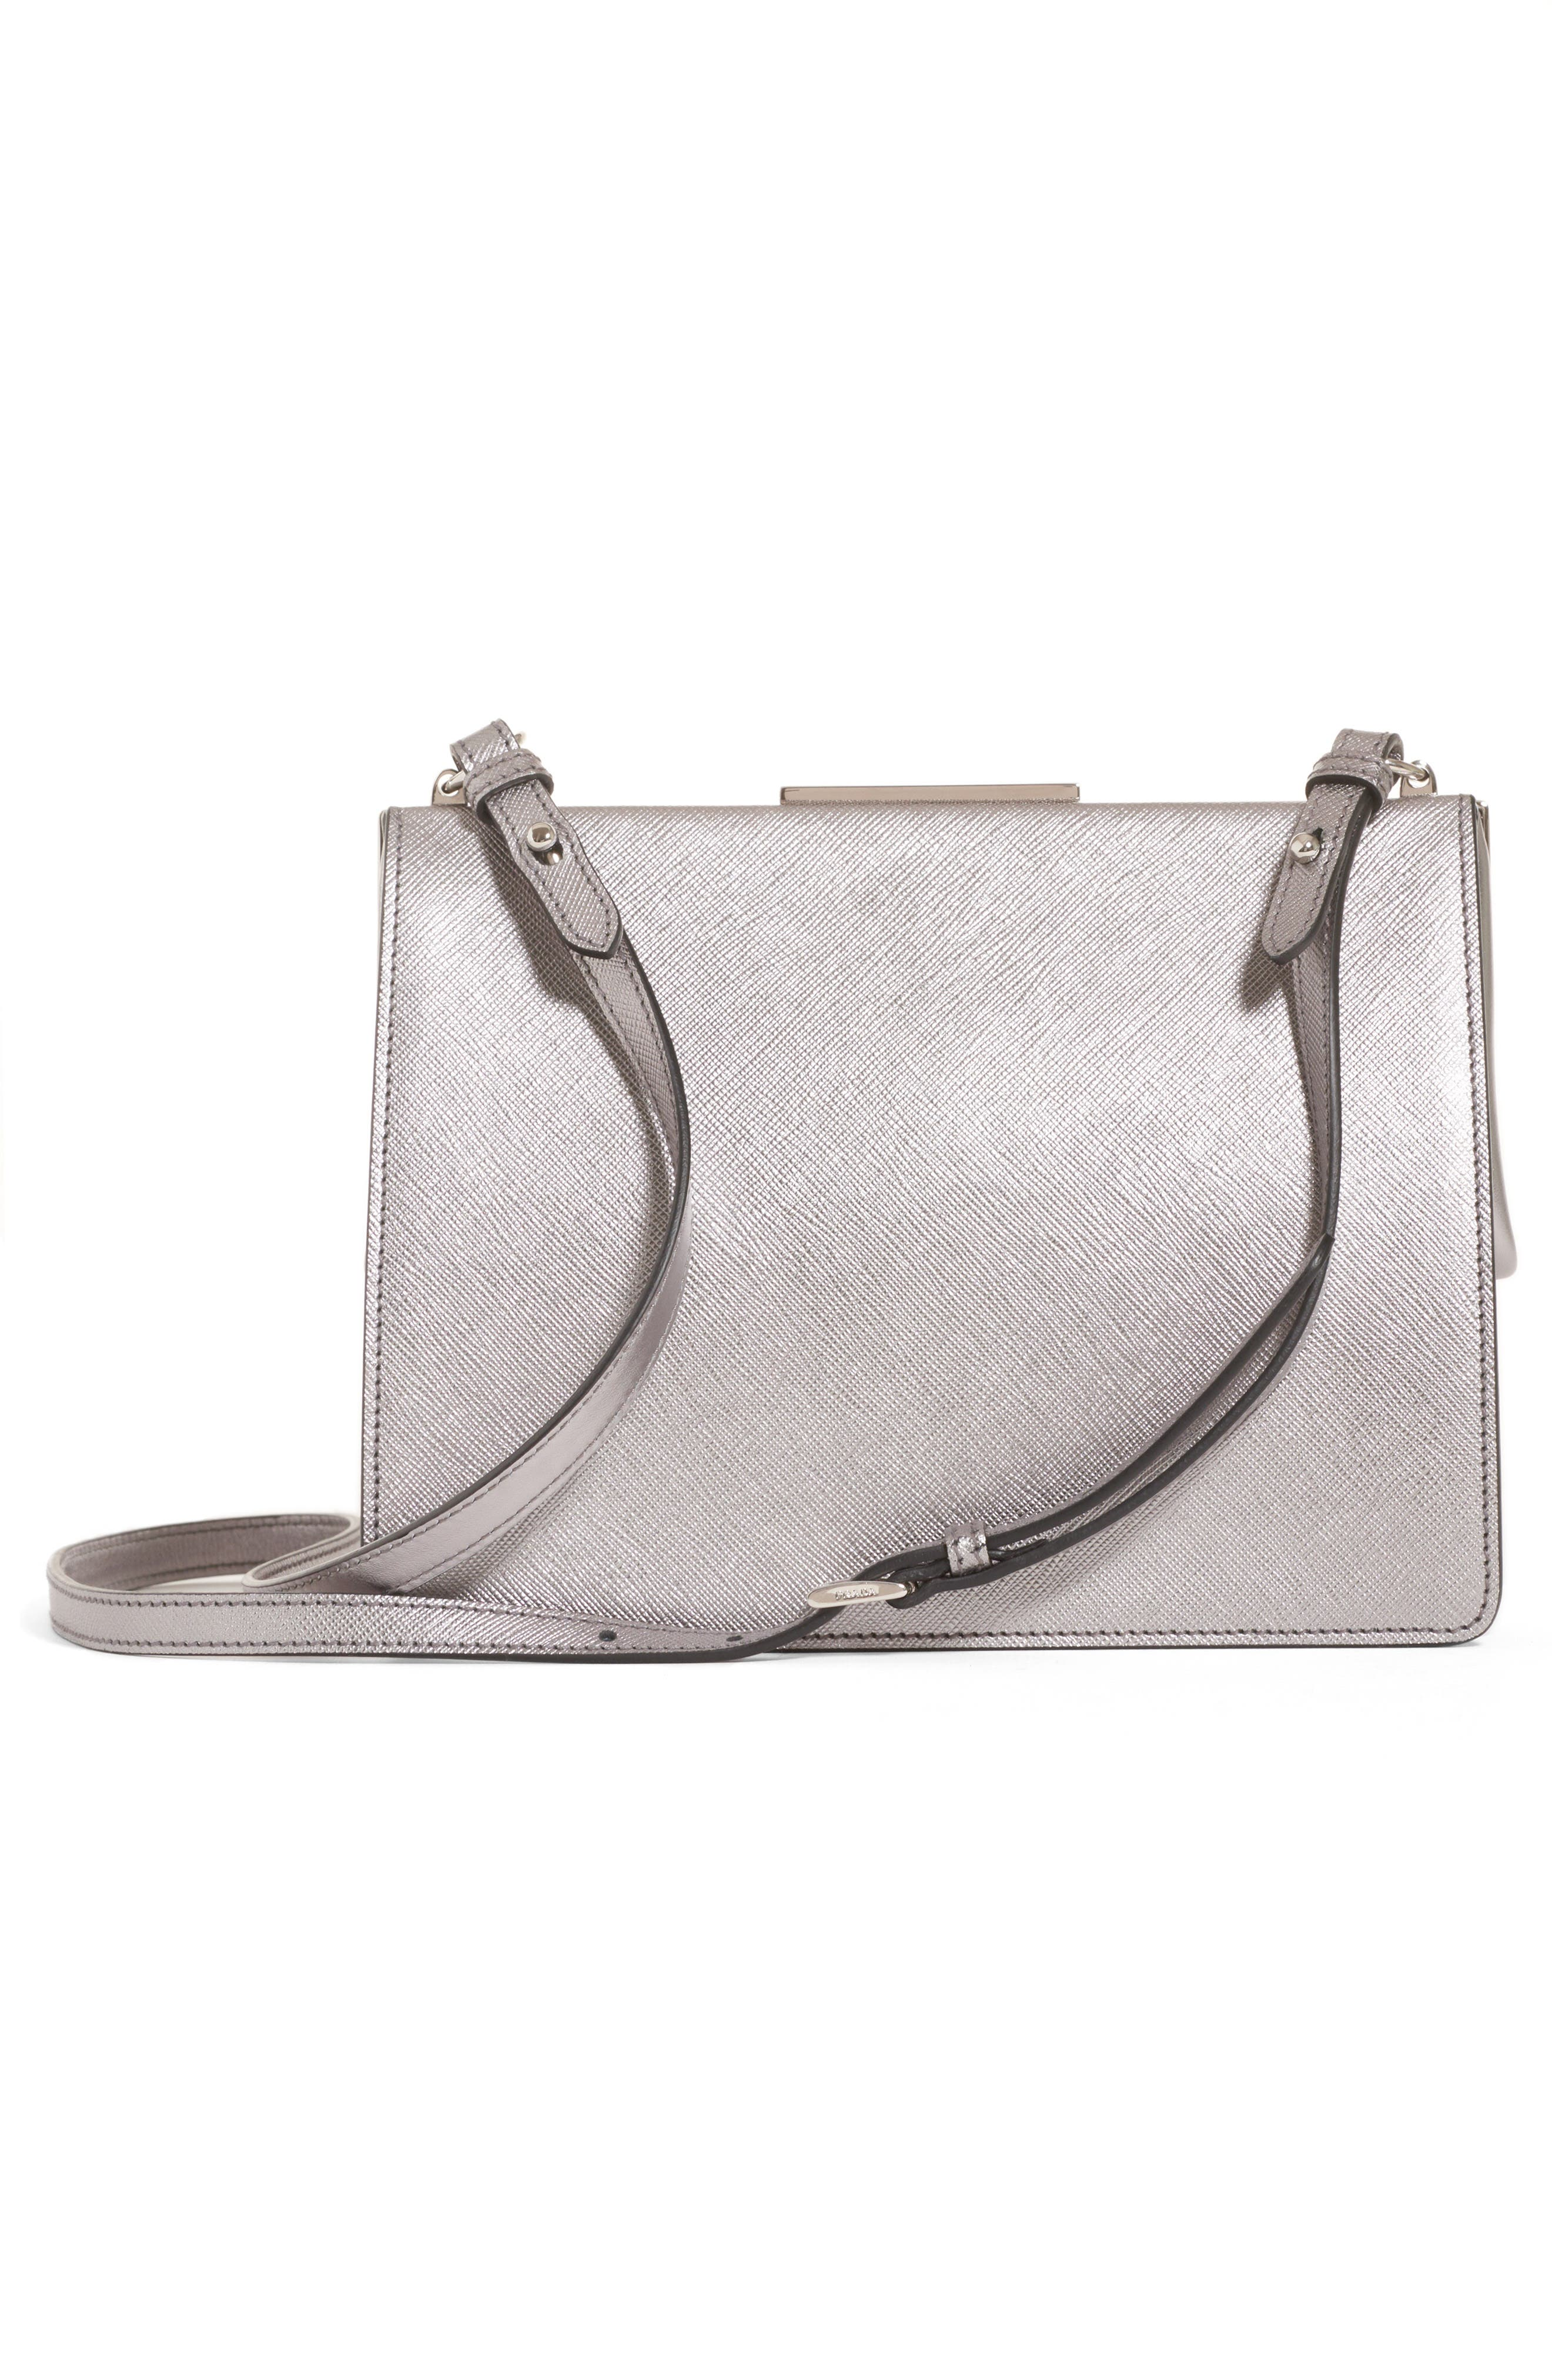 Small Frame Saffiano & City Calfskin Leather Shoulder Bag,                             Alternate thumbnail 2, color,                             Cromo